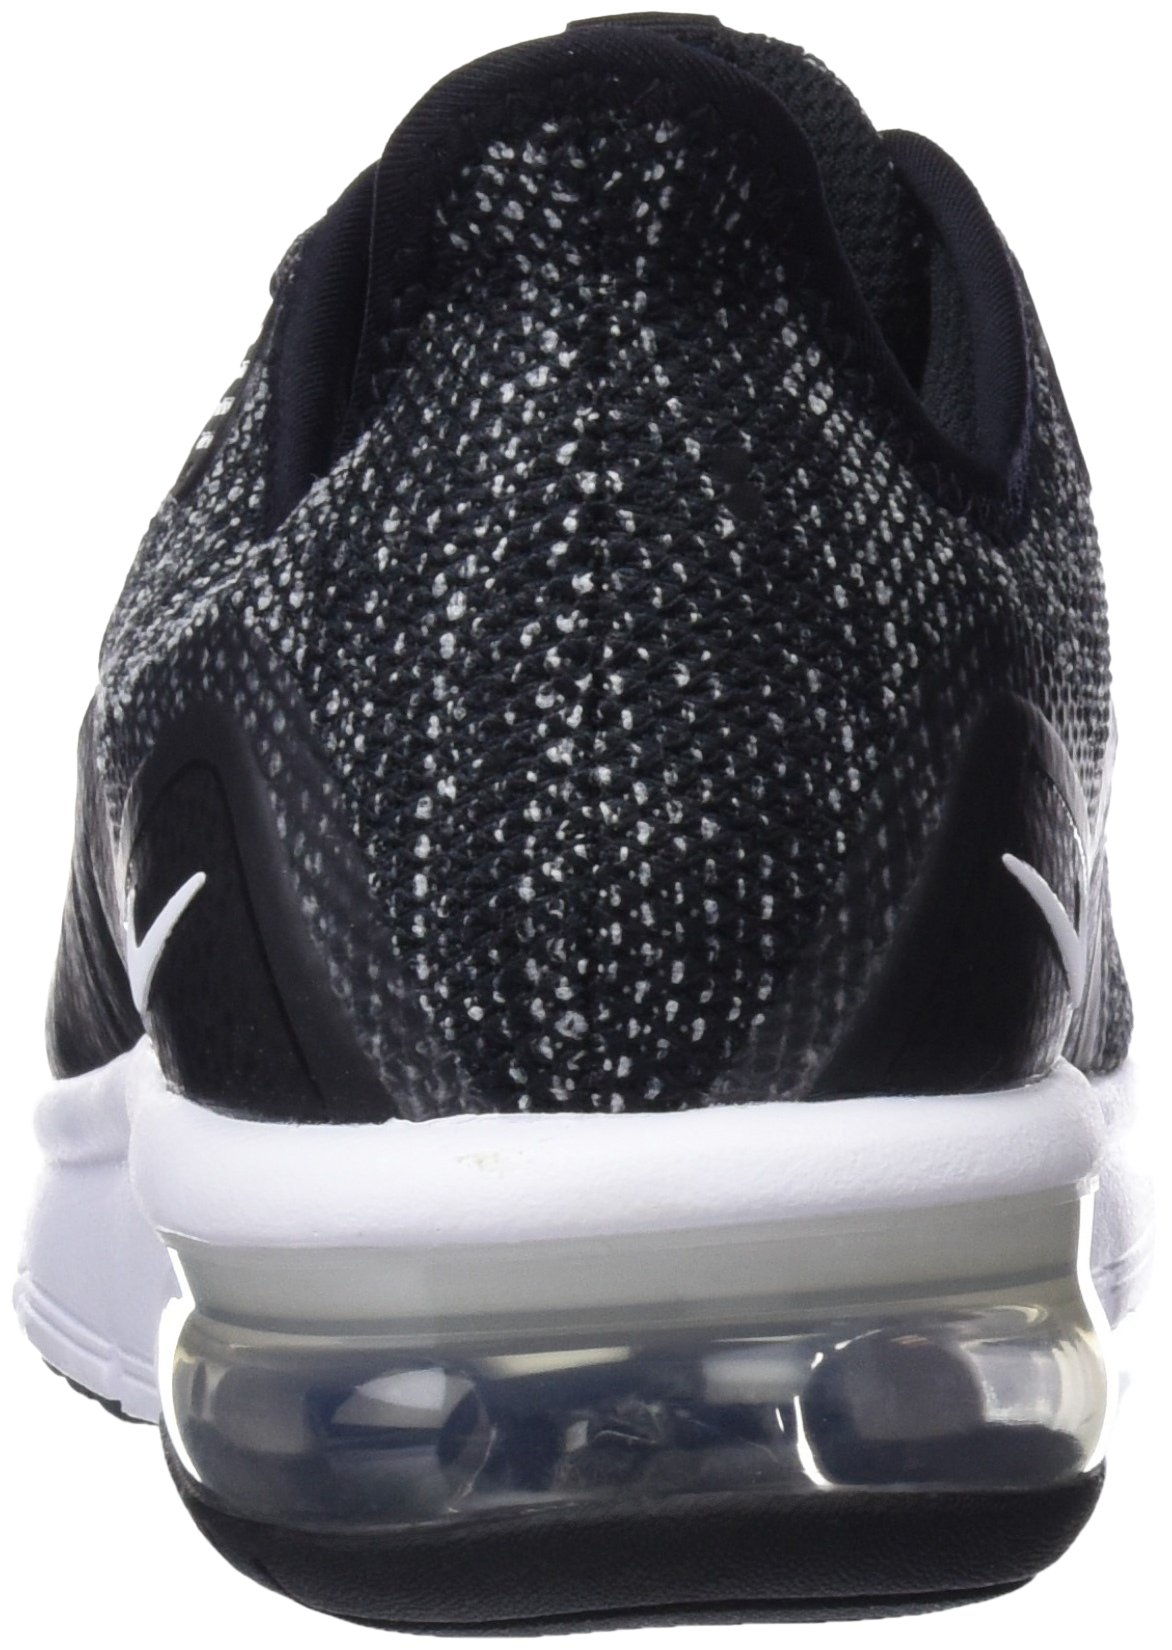 Nike Boy's Air Max Sequent 3 Running Shoe Black/White/Dark Grey Size 3.5 M US by Nike (Image #2)